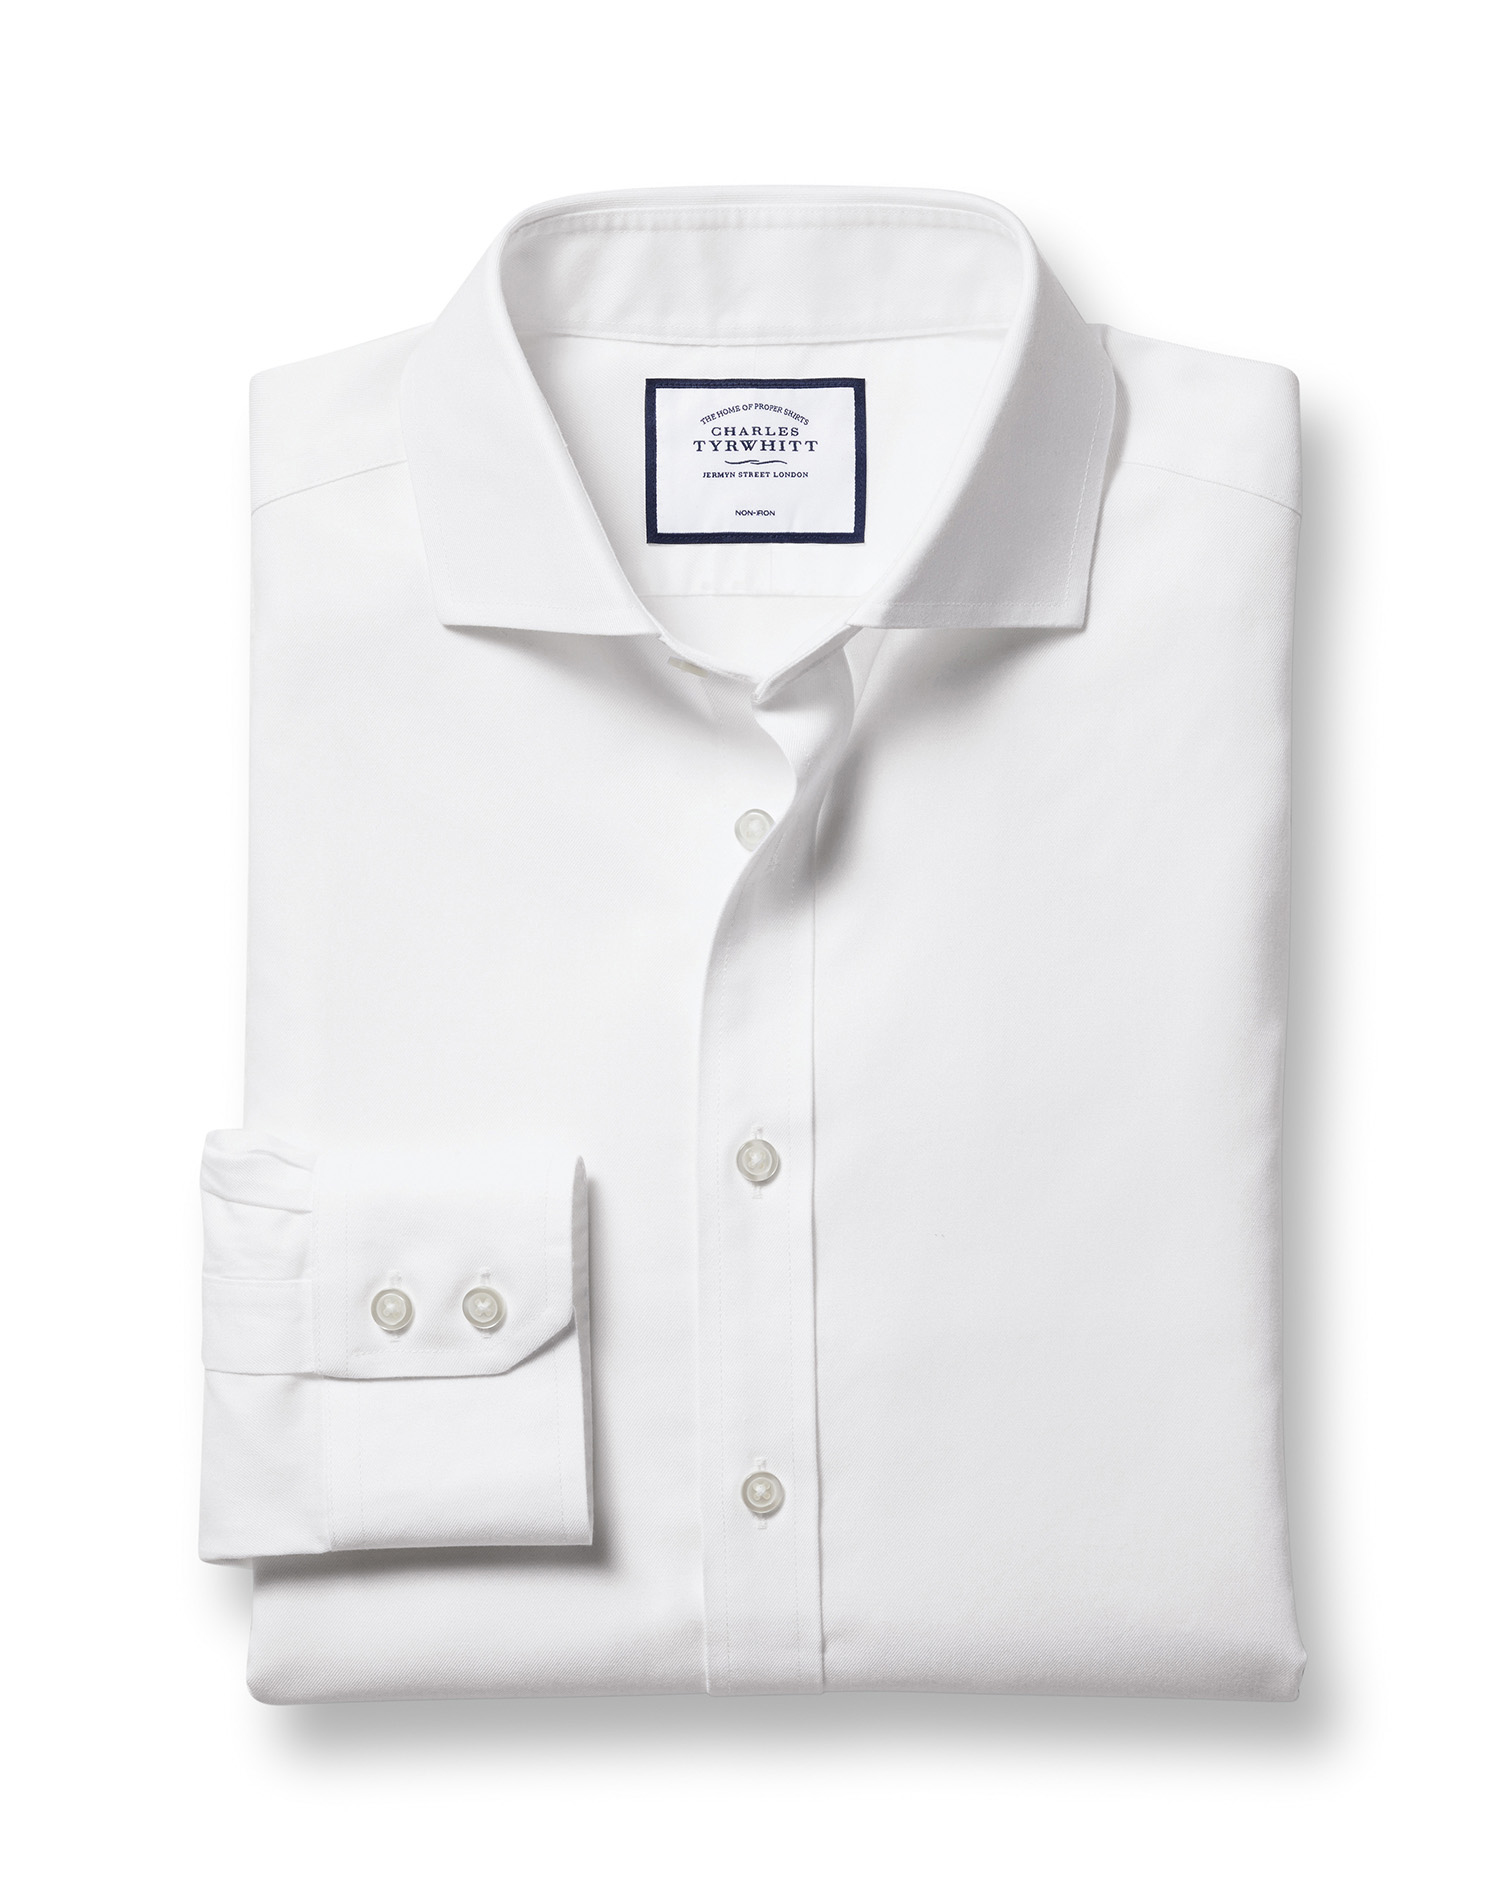 Slim Fit Cutaway Non-Iron Twill White Cotton Formal Shirt Single Cuff Size 17/35 by Charles Tyrwhitt